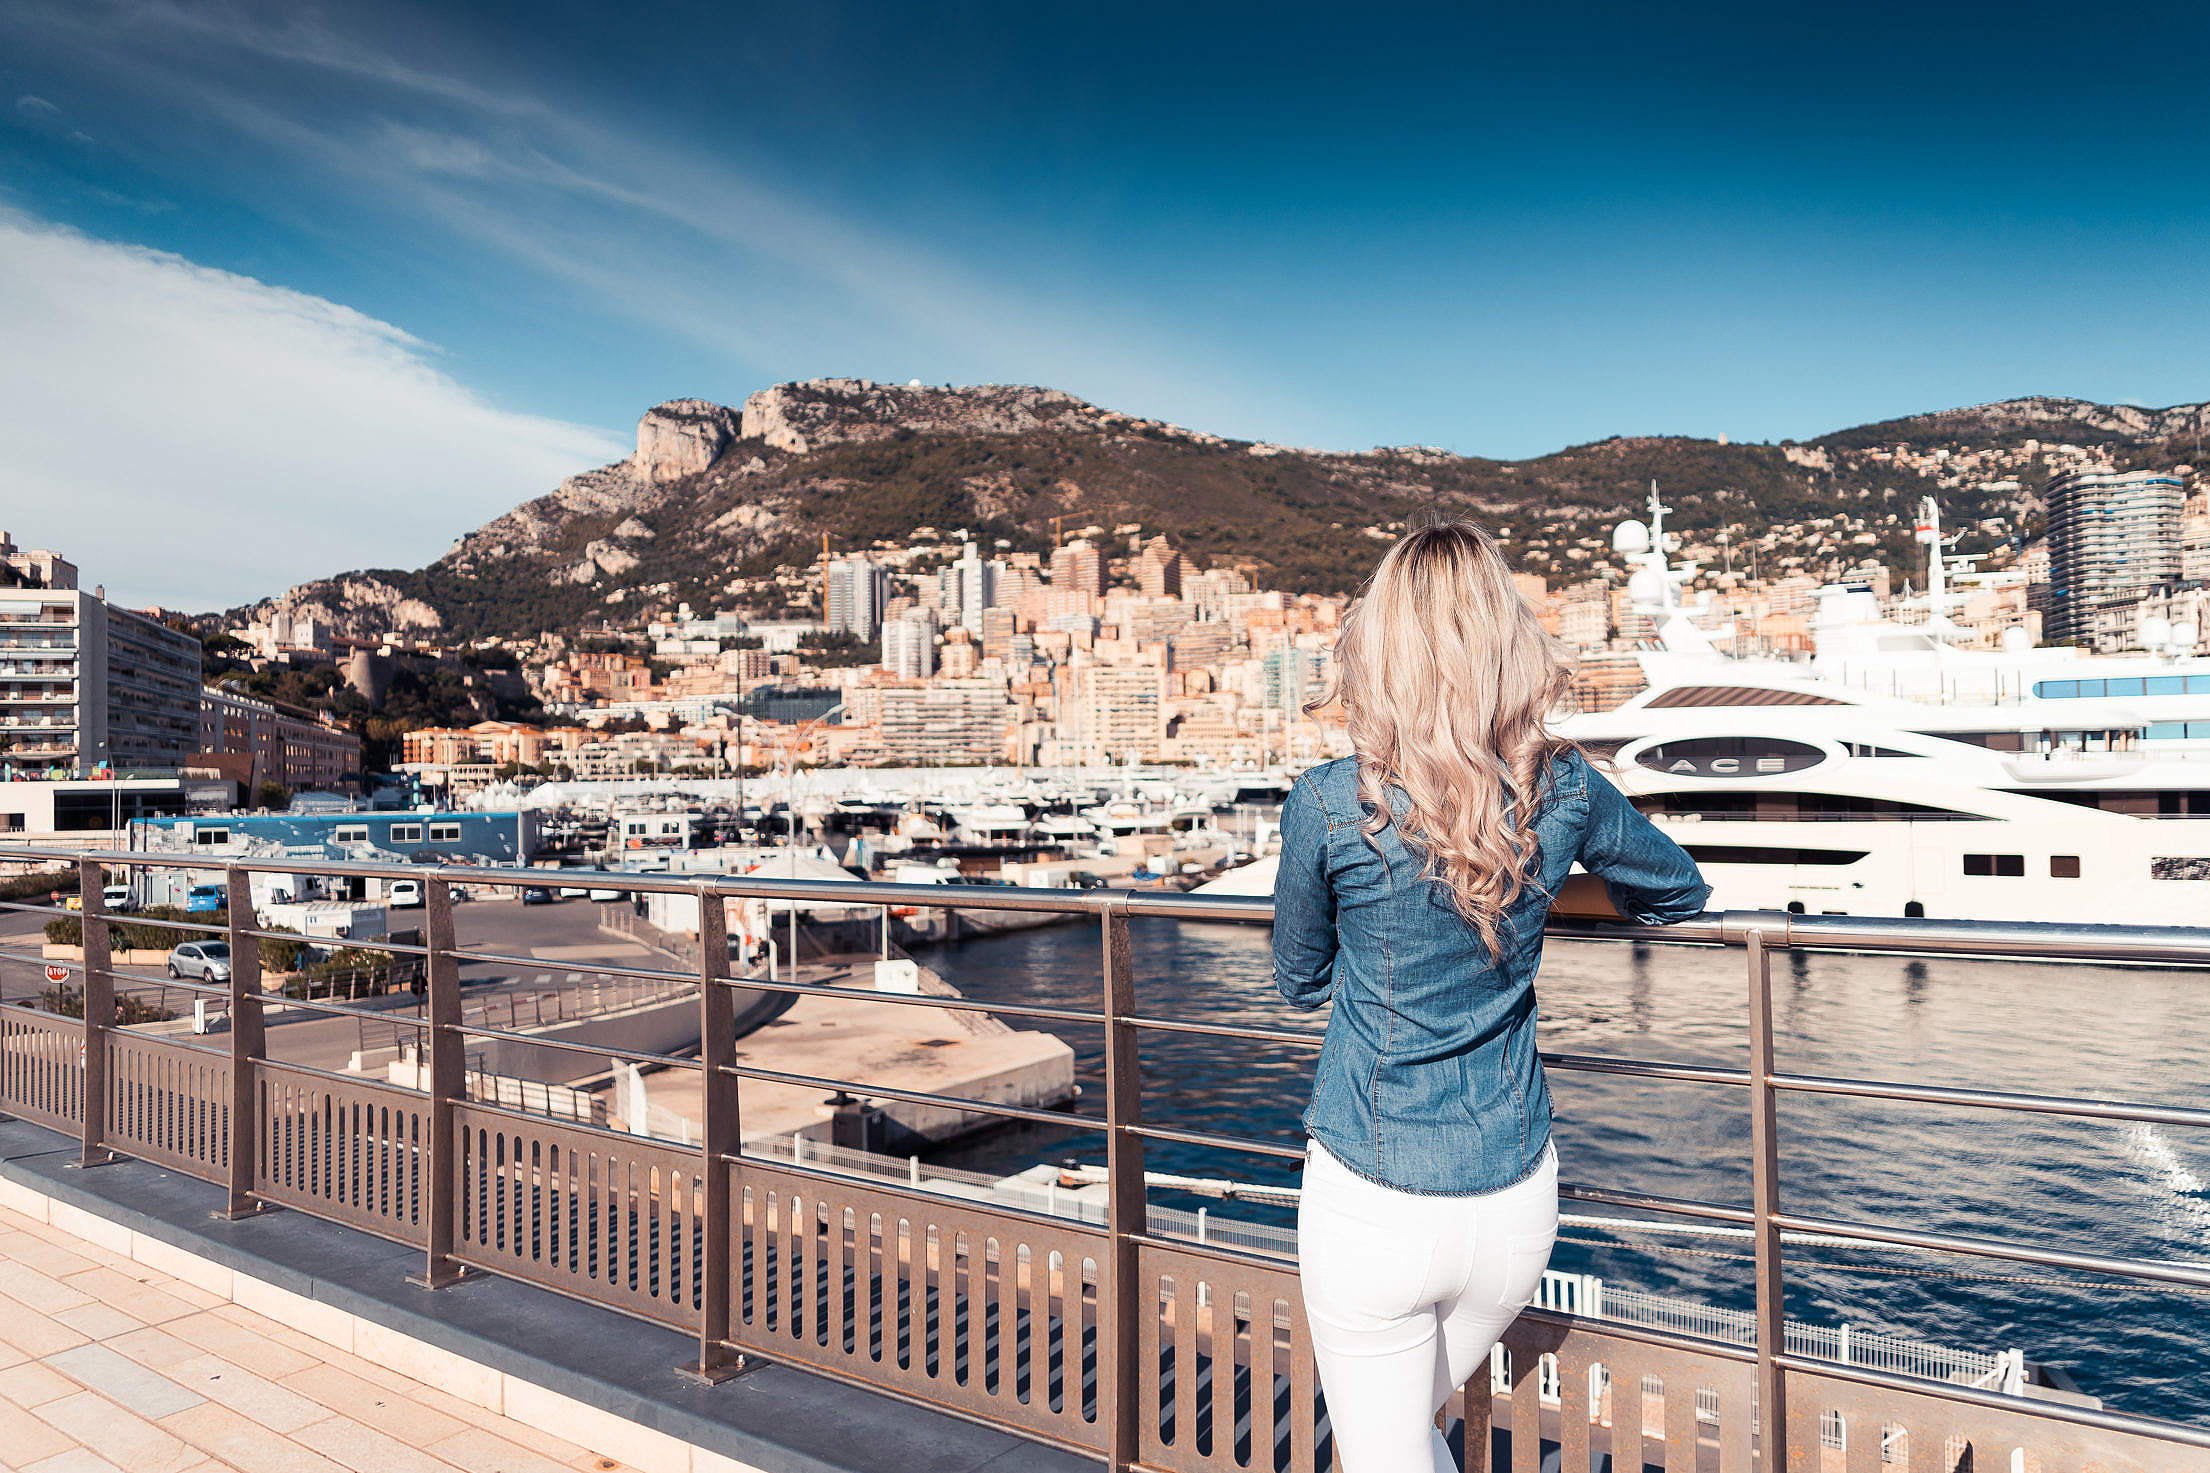 Download Woman Looking at Boats in Port of Monaco Harbor Free Stock Photo